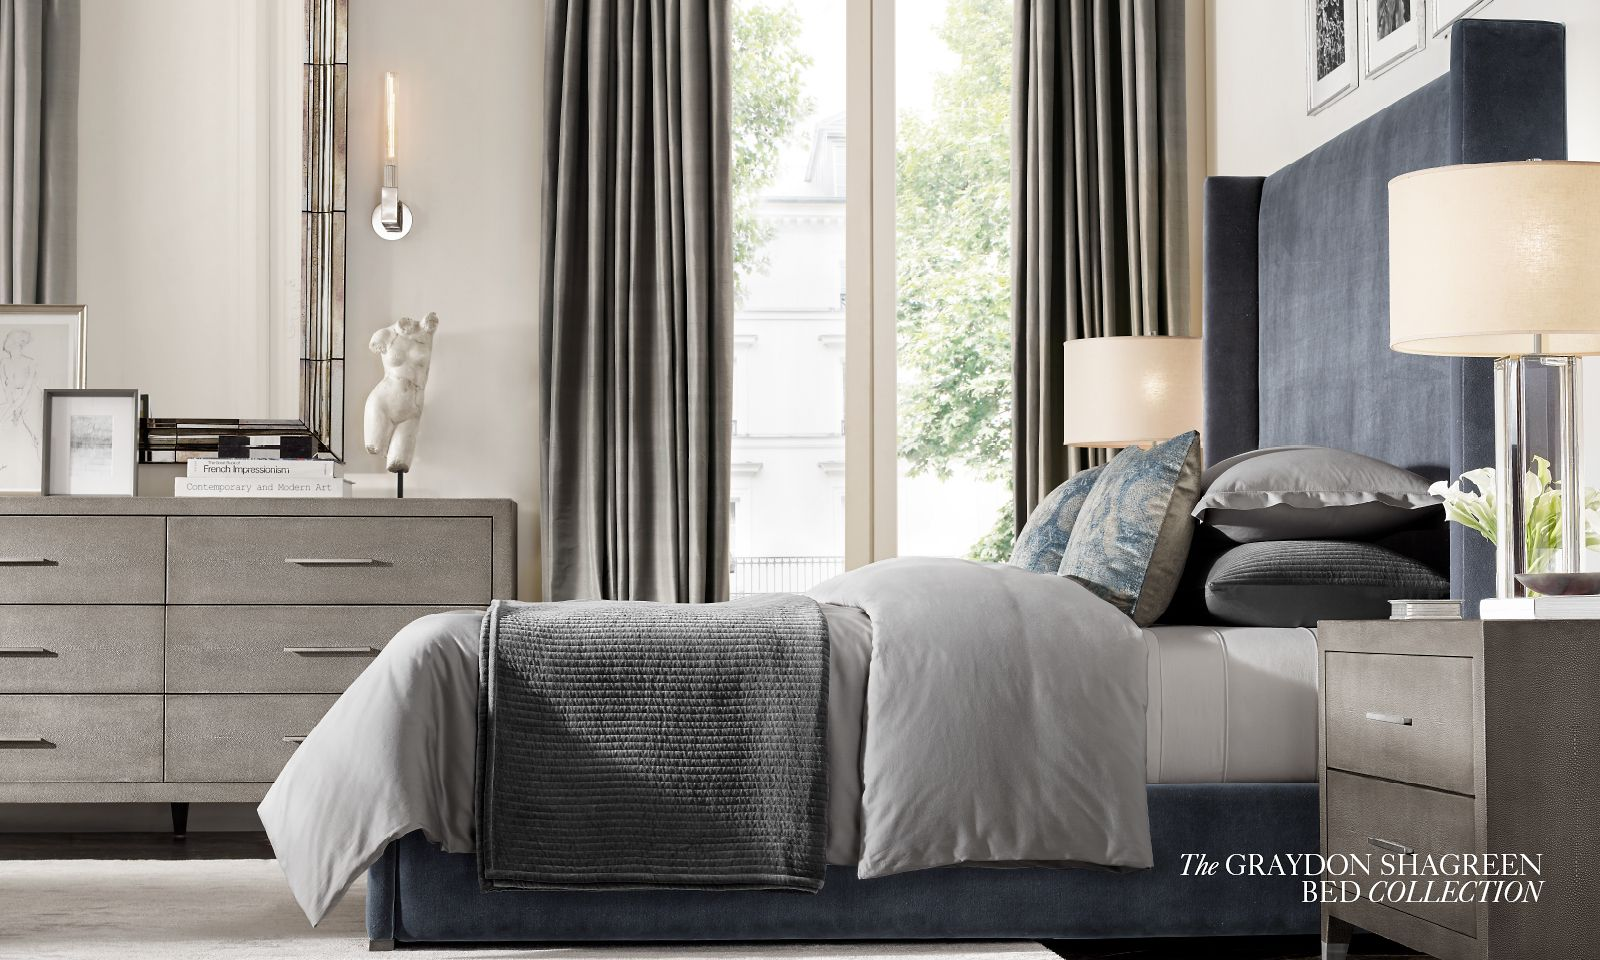 The Graydon Shagreen Bed Collection